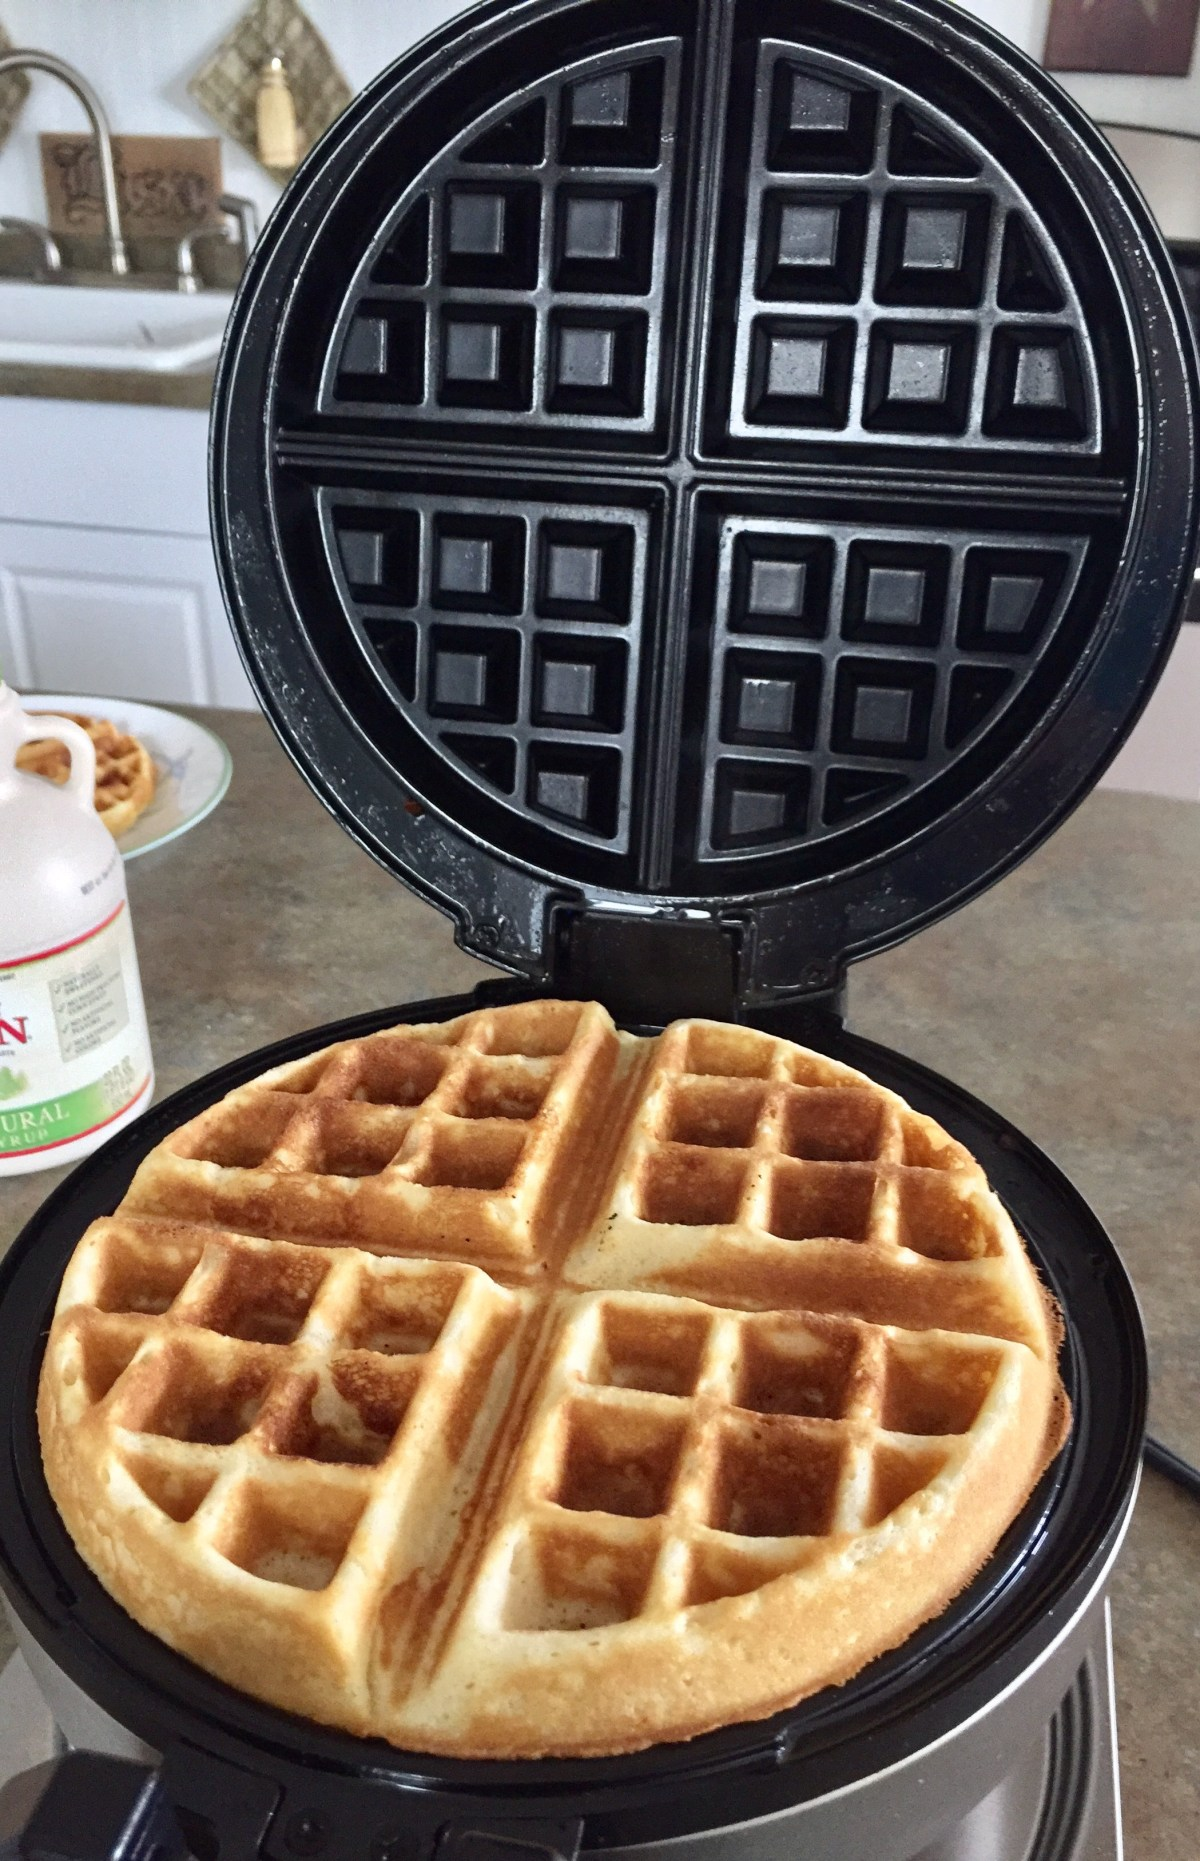 Close the waffle iron and wait for the timer to go off.